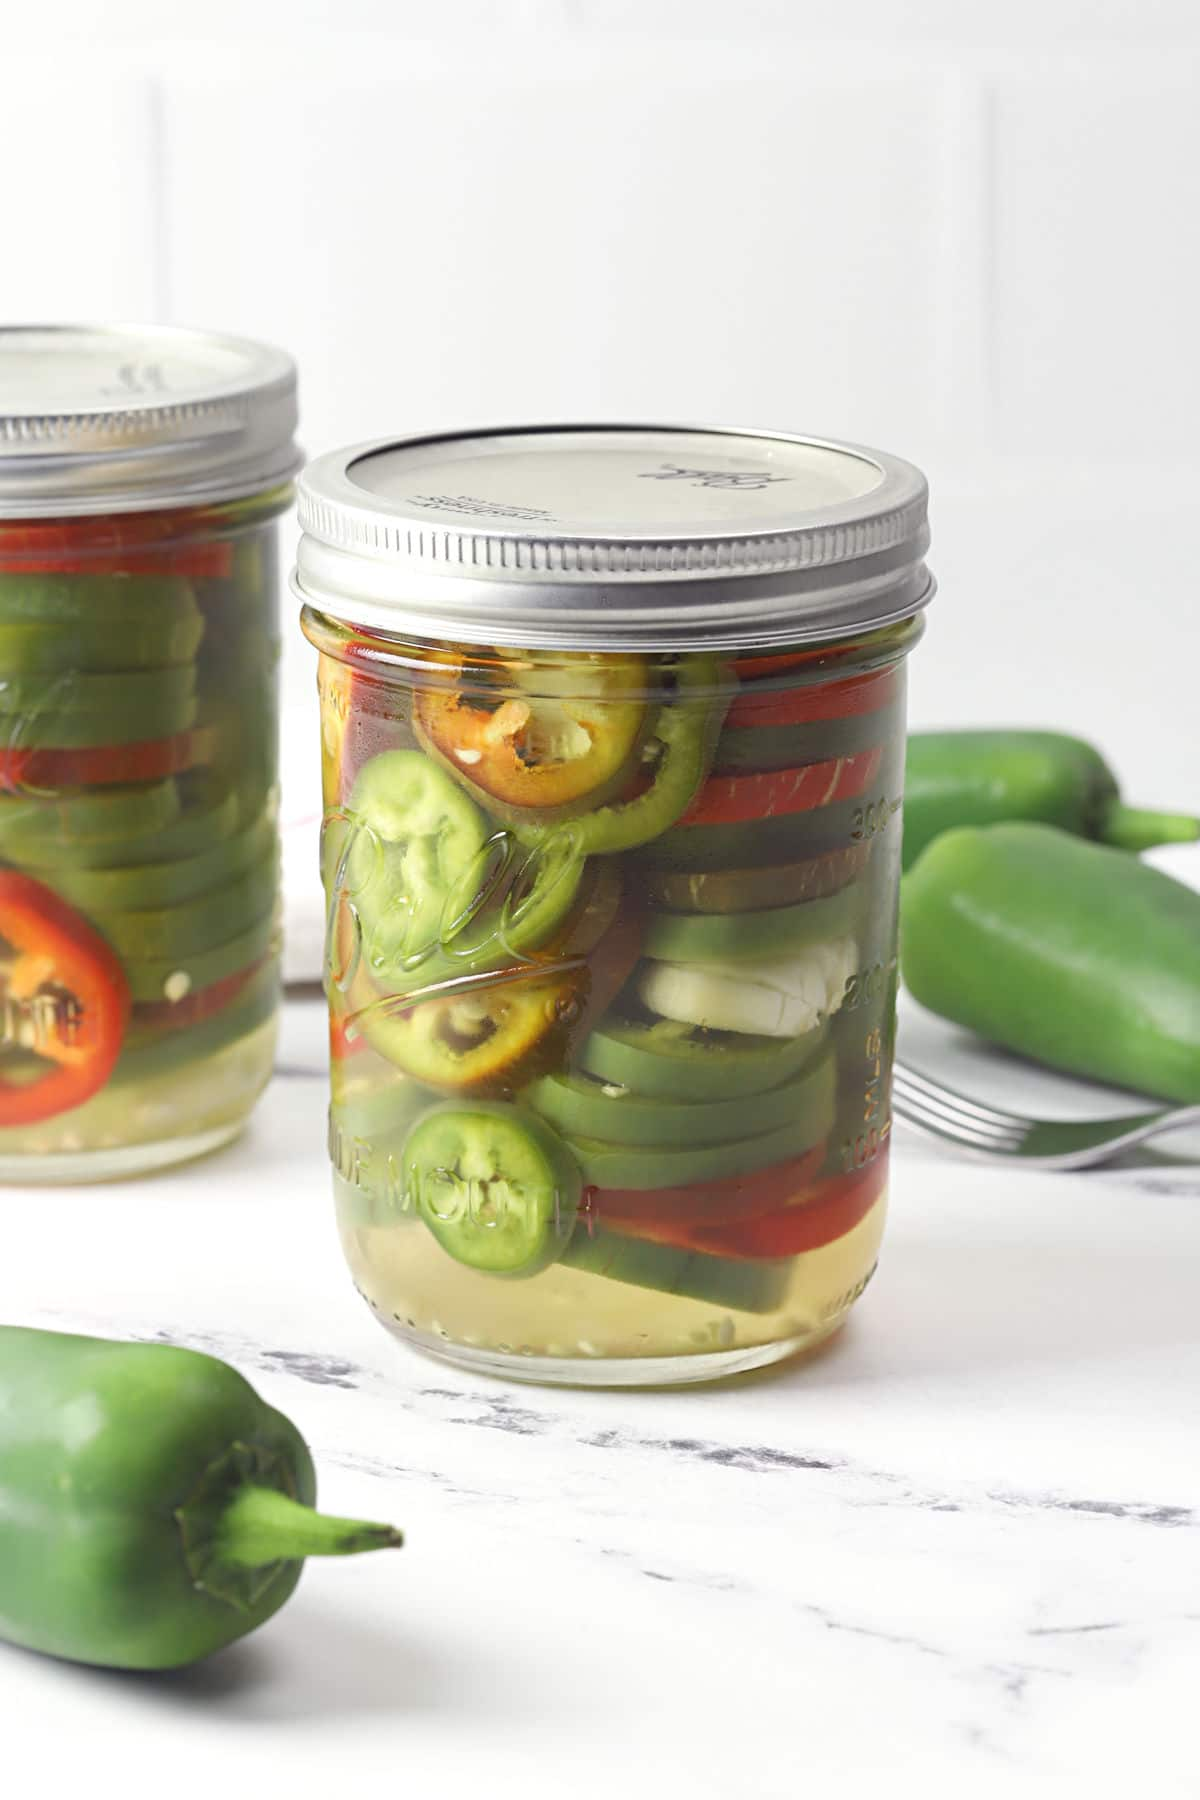 A jar of pickled jalapenos on a marble counter top.